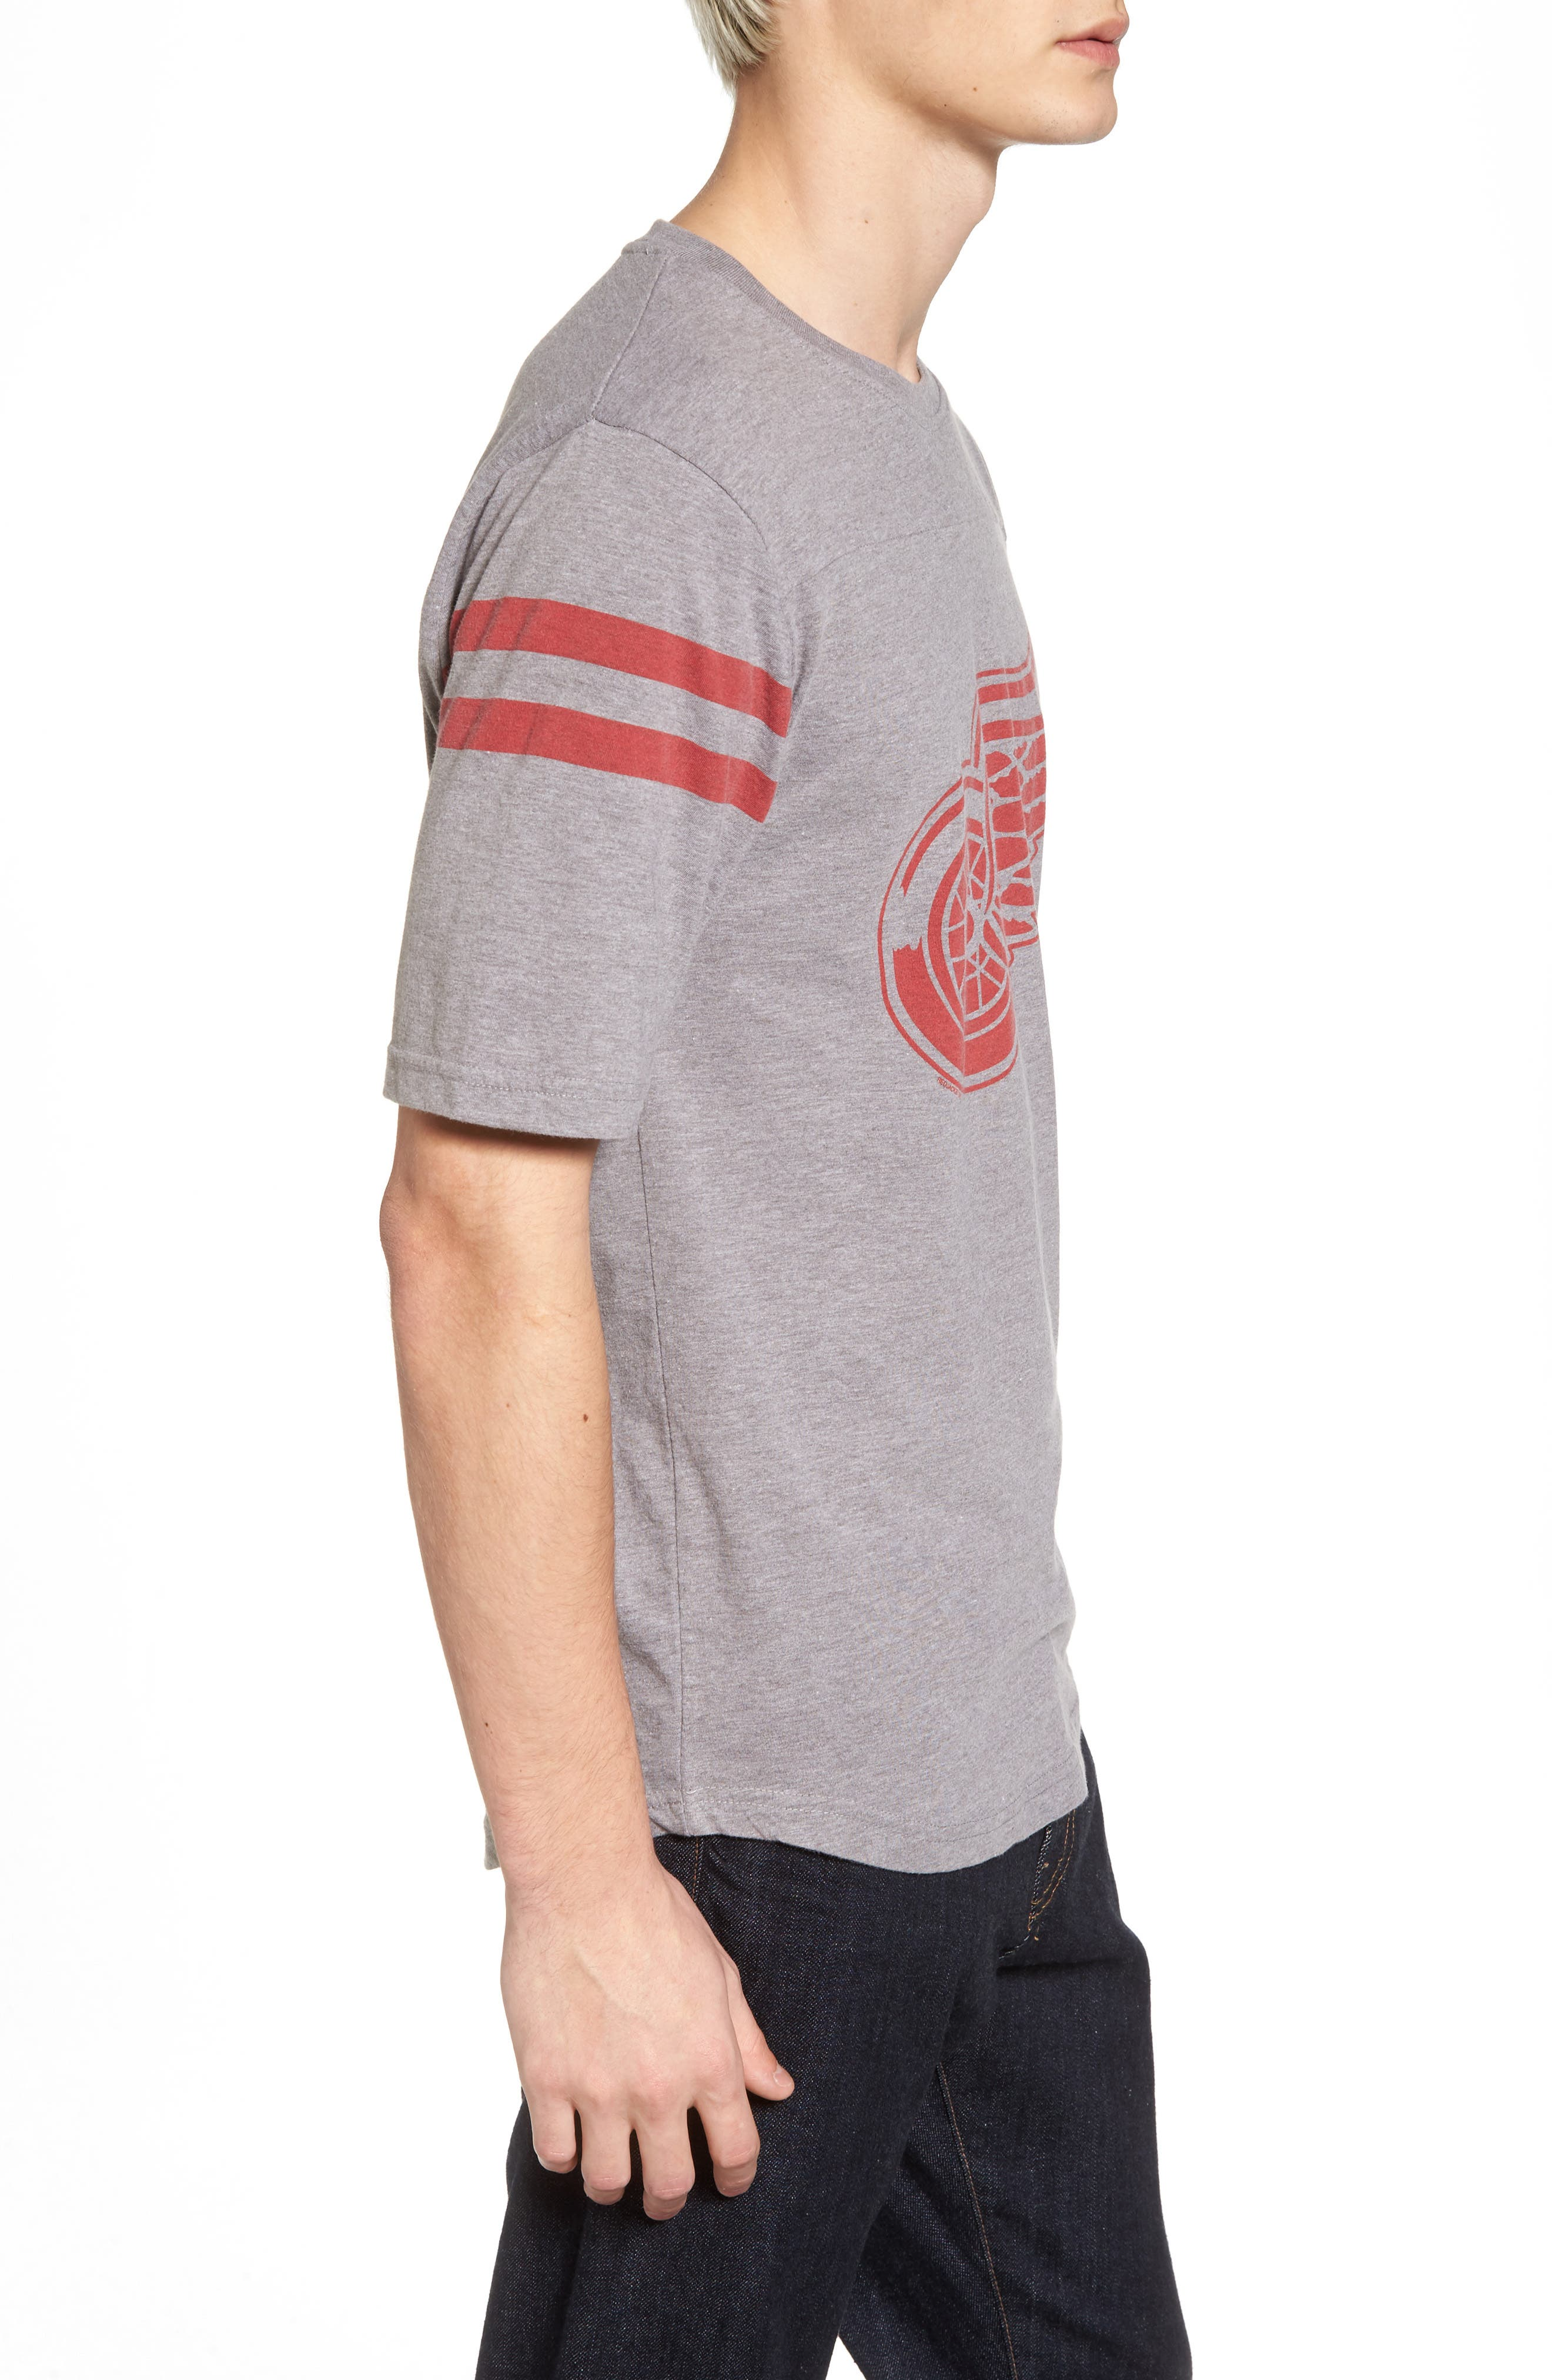 Crosby Detroit Red Wings T-Shirt,                             Alternate thumbnail 3, color,